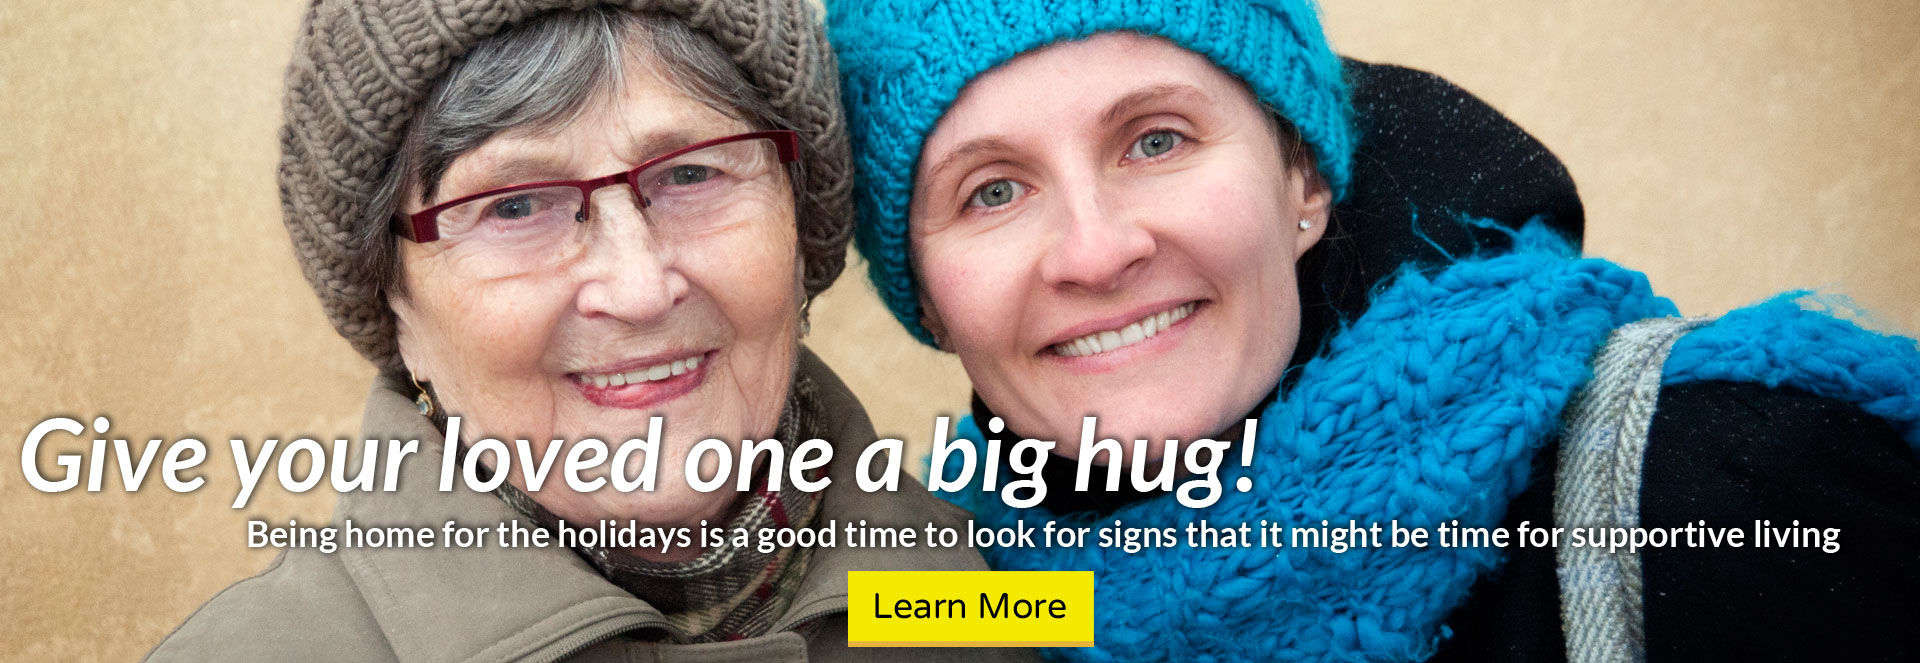 Give your loved one a big hug! Being home for the holidays is a good time to look for signs that it might be time for supportive living. Click here to learn more